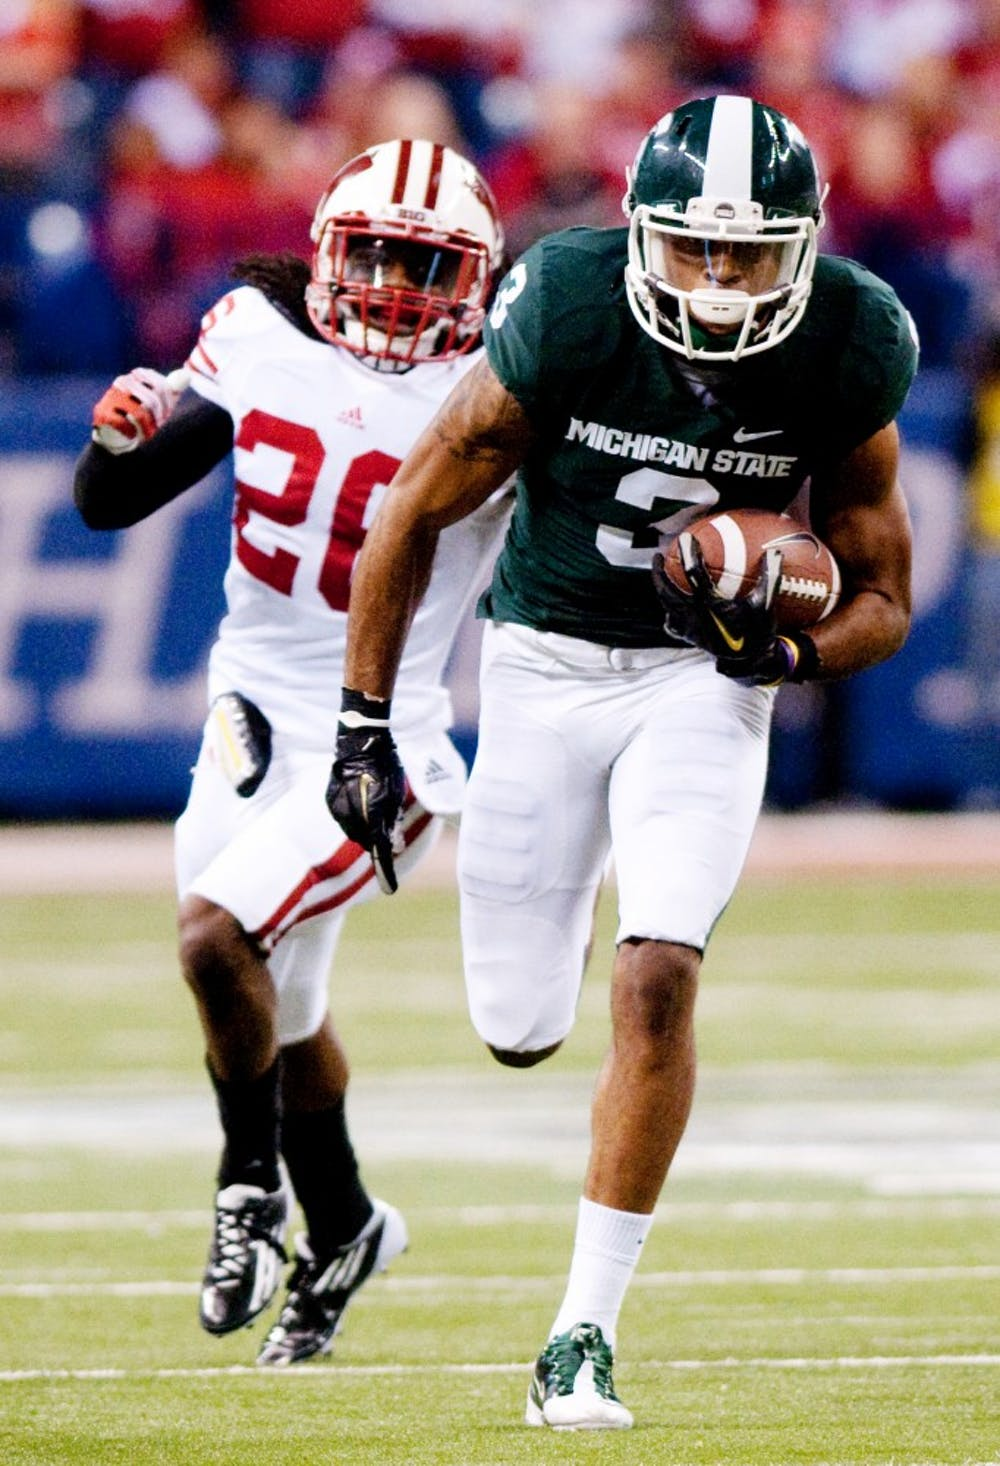 Senior wide receiver B.J. Cunningham breaks into the open field after pulling in a catch. The Spartans lost to the Wisconsin Badgers, 42-39, in the Big Ten Championship game on Saturday night at Lucas Oil Stadium in Indianapolis, Ind. Josh Radtke/The State News